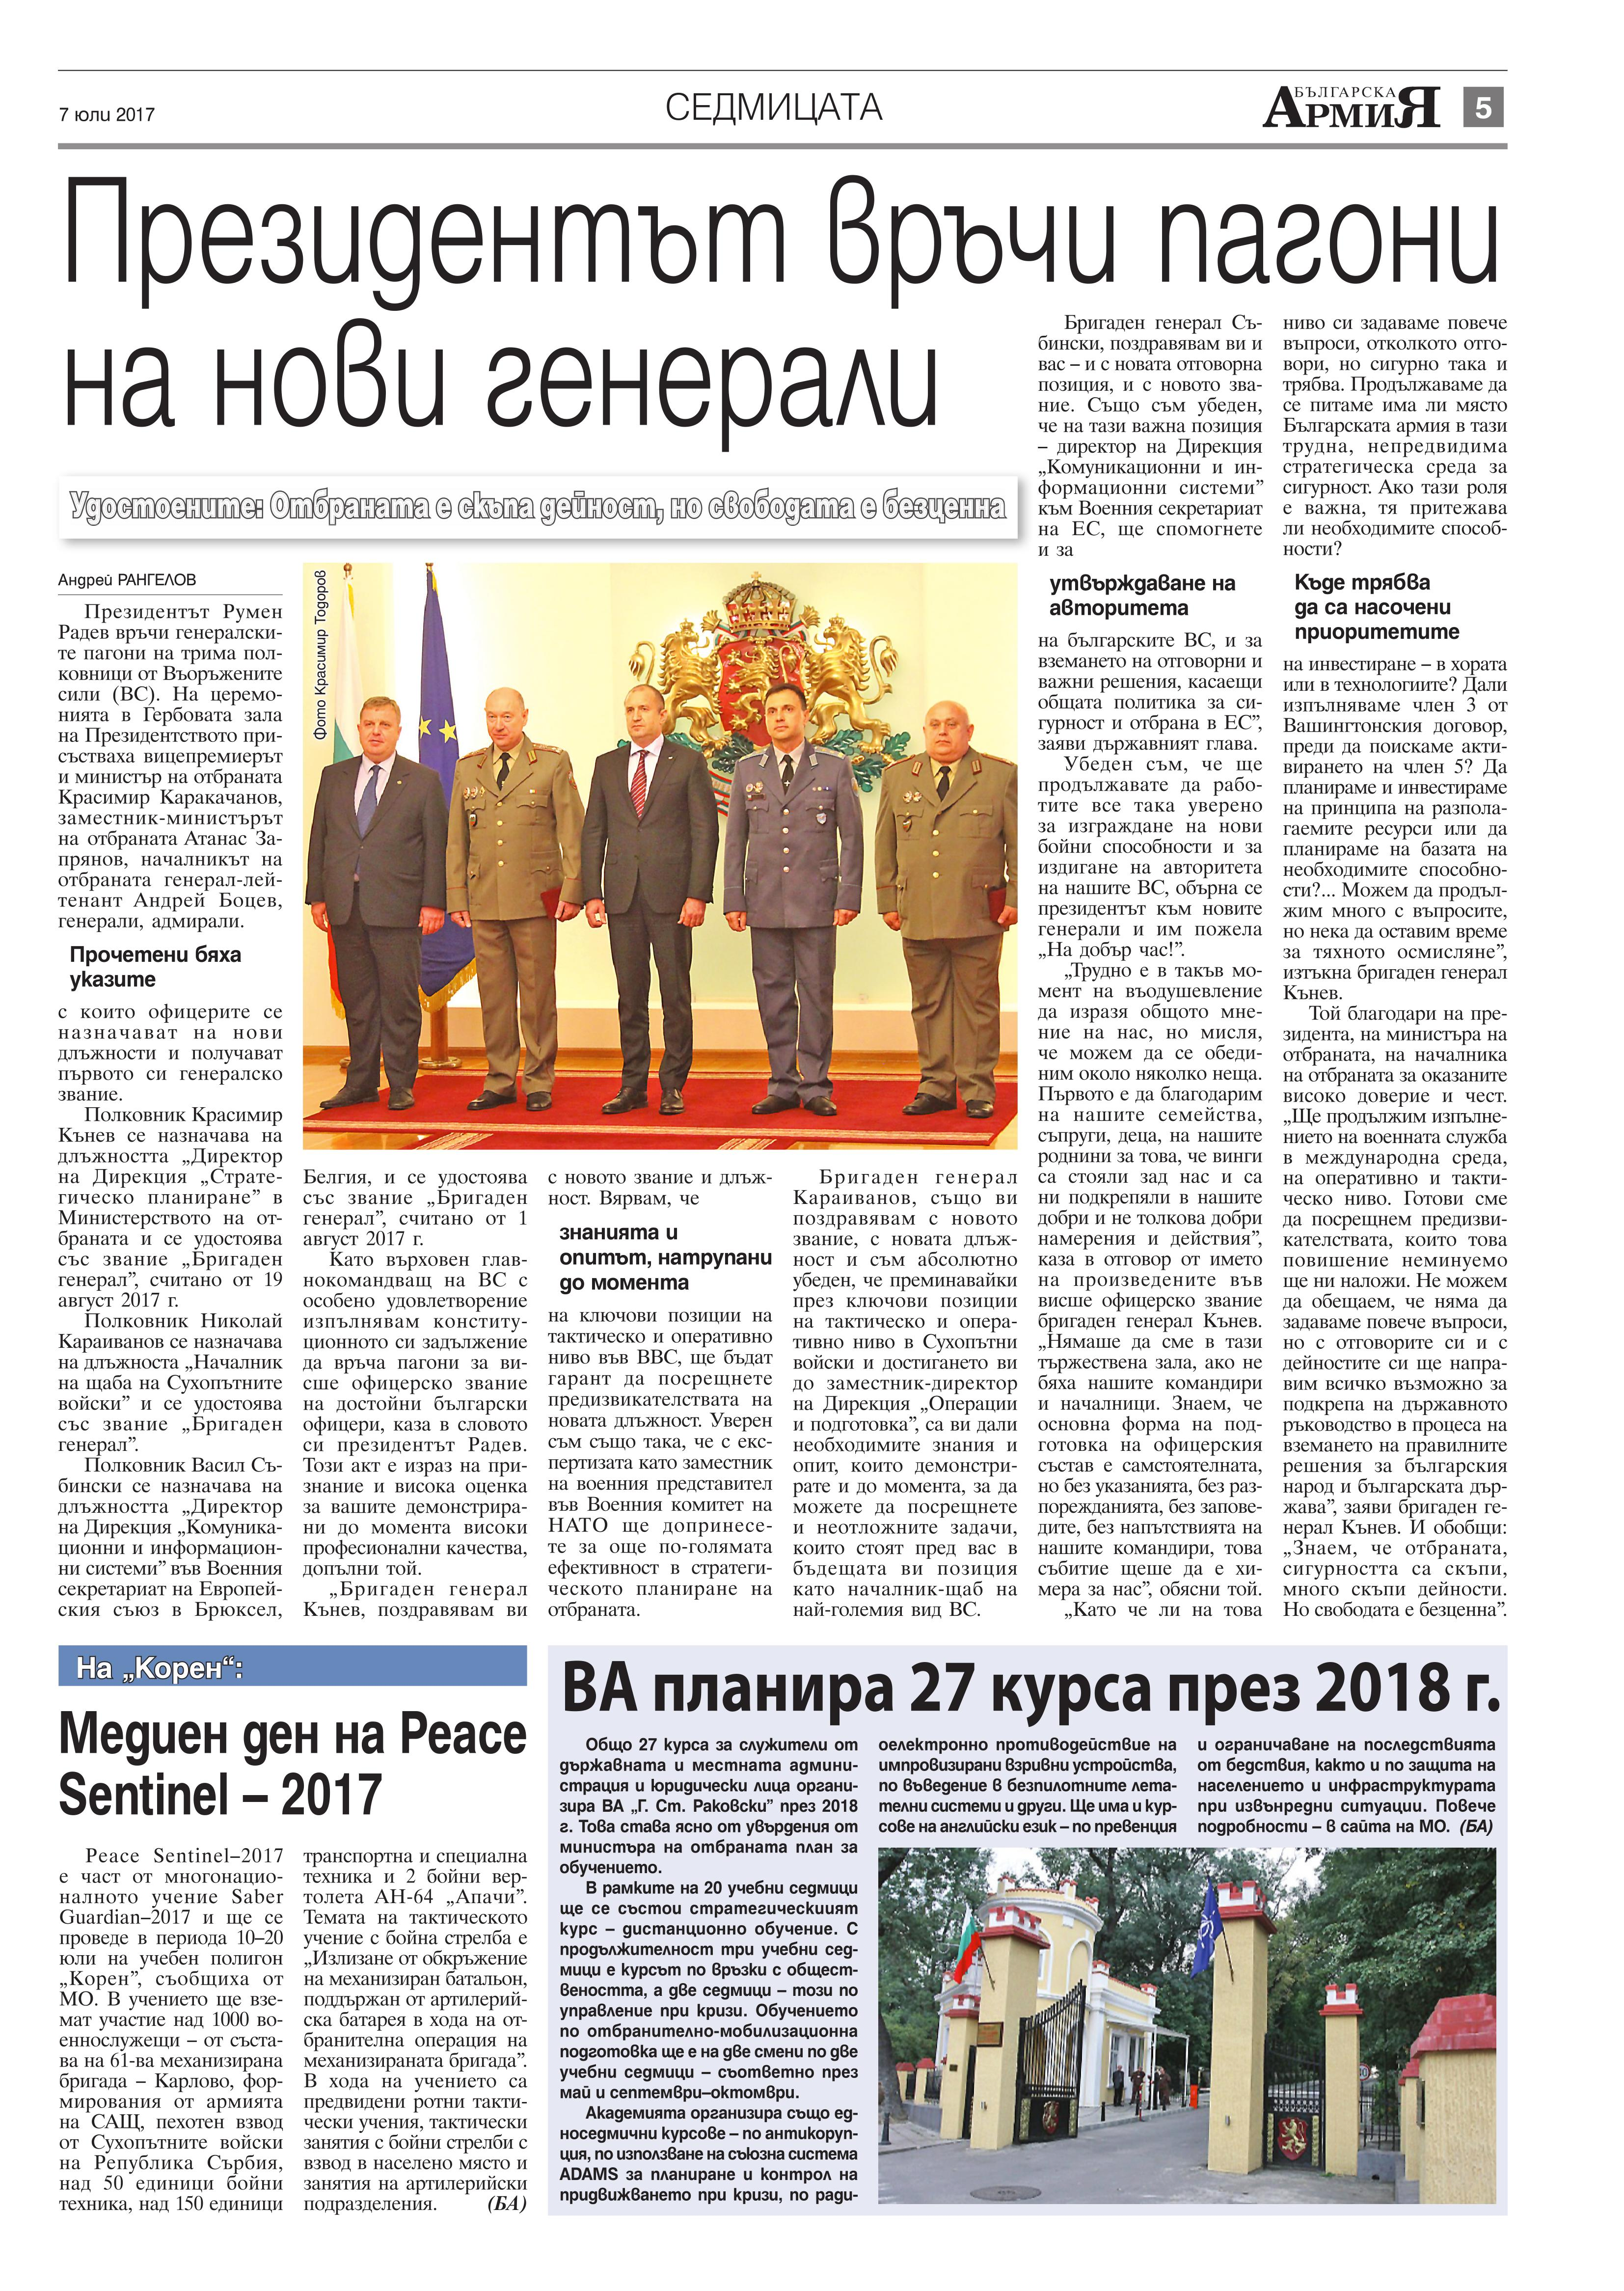 https://www.armymedia.bg/wp-content/uploads/2015/06/05.page1_-24.jpg